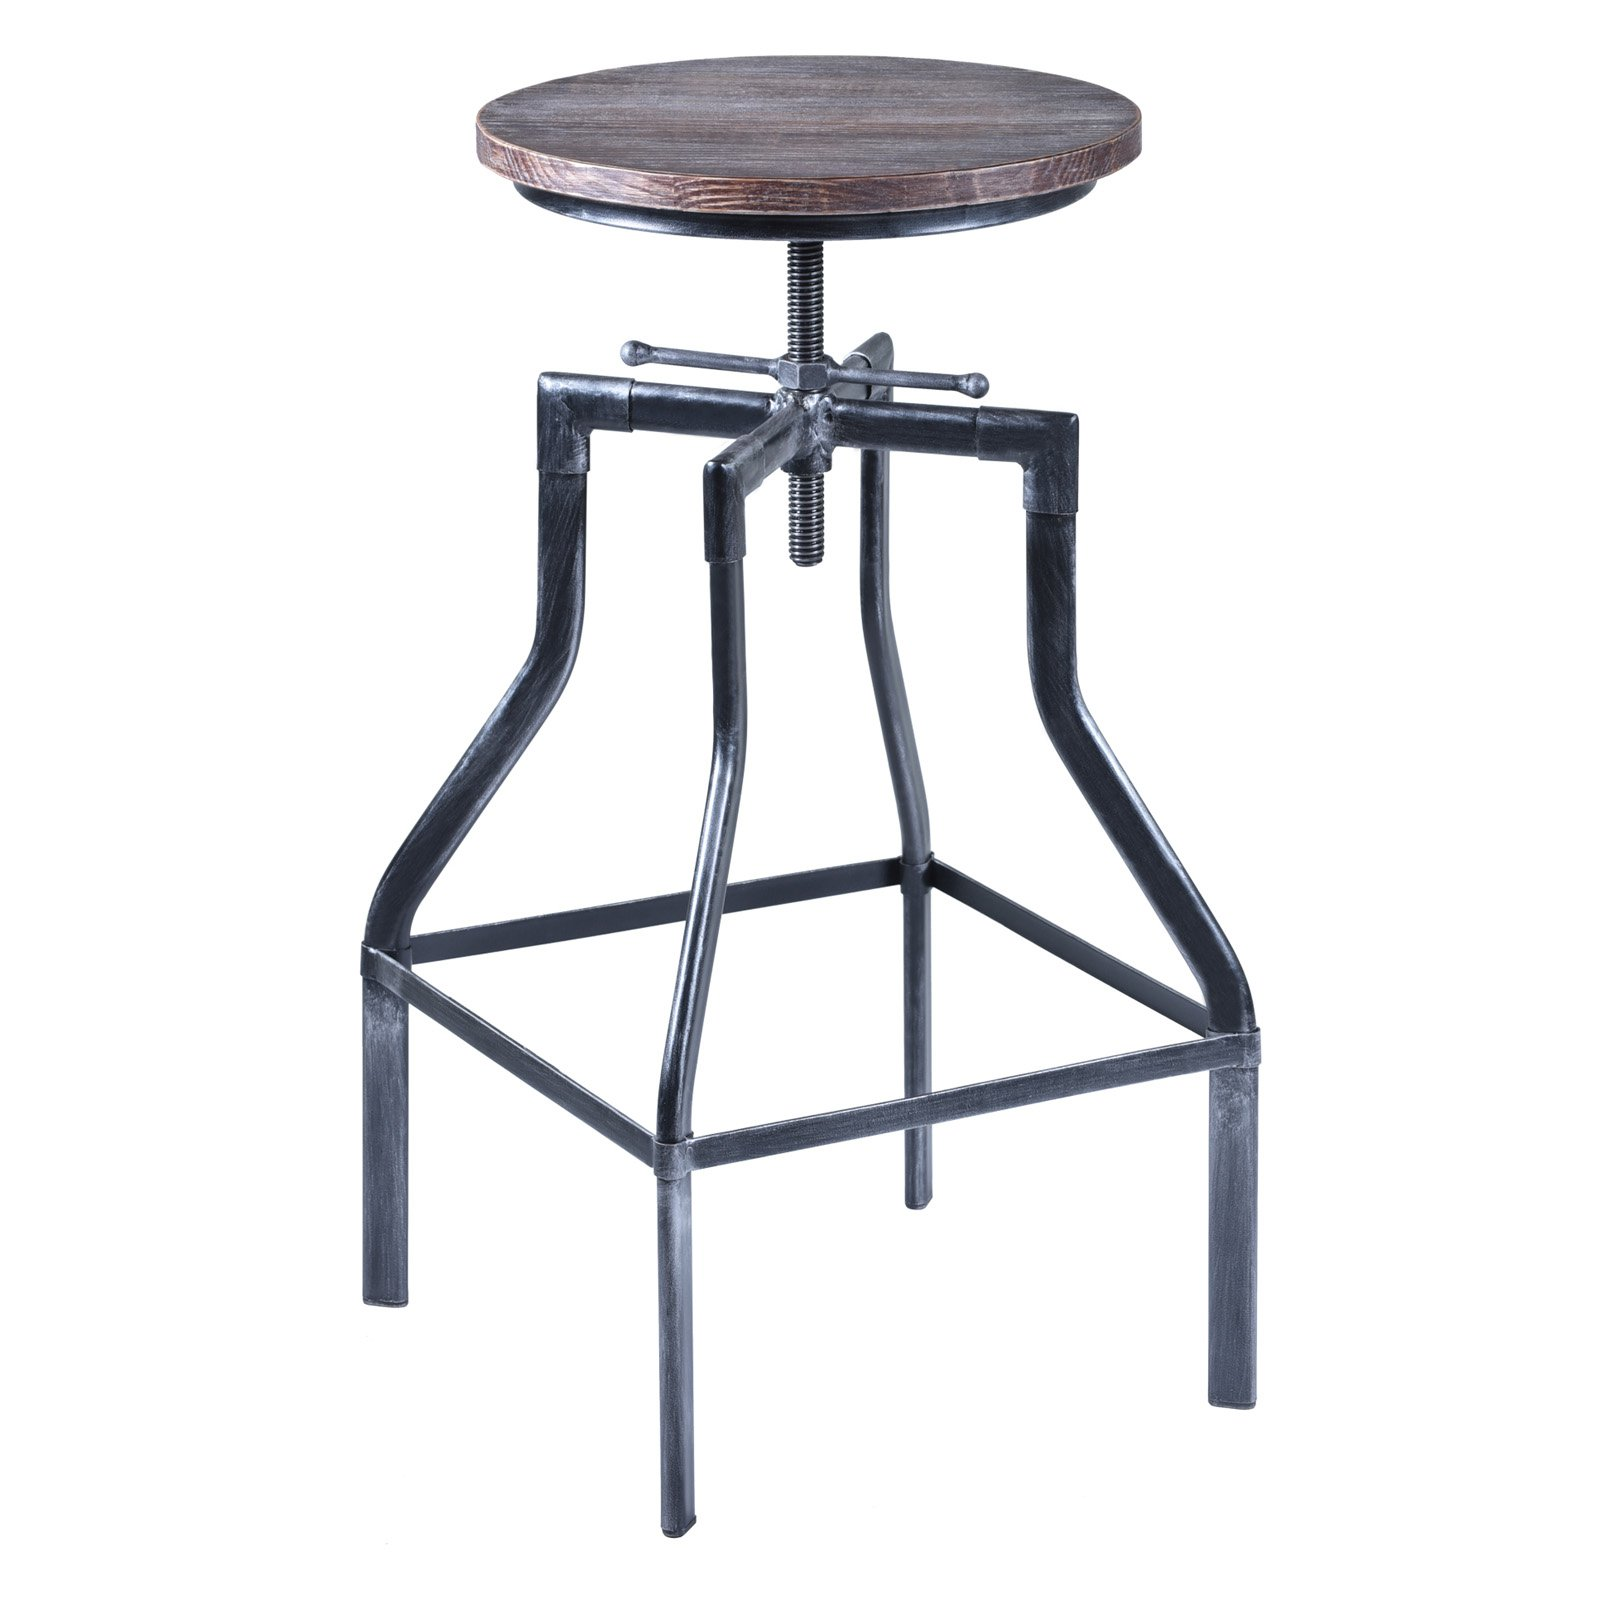 Armen Living Concord Adjustable Backless Bar Stool